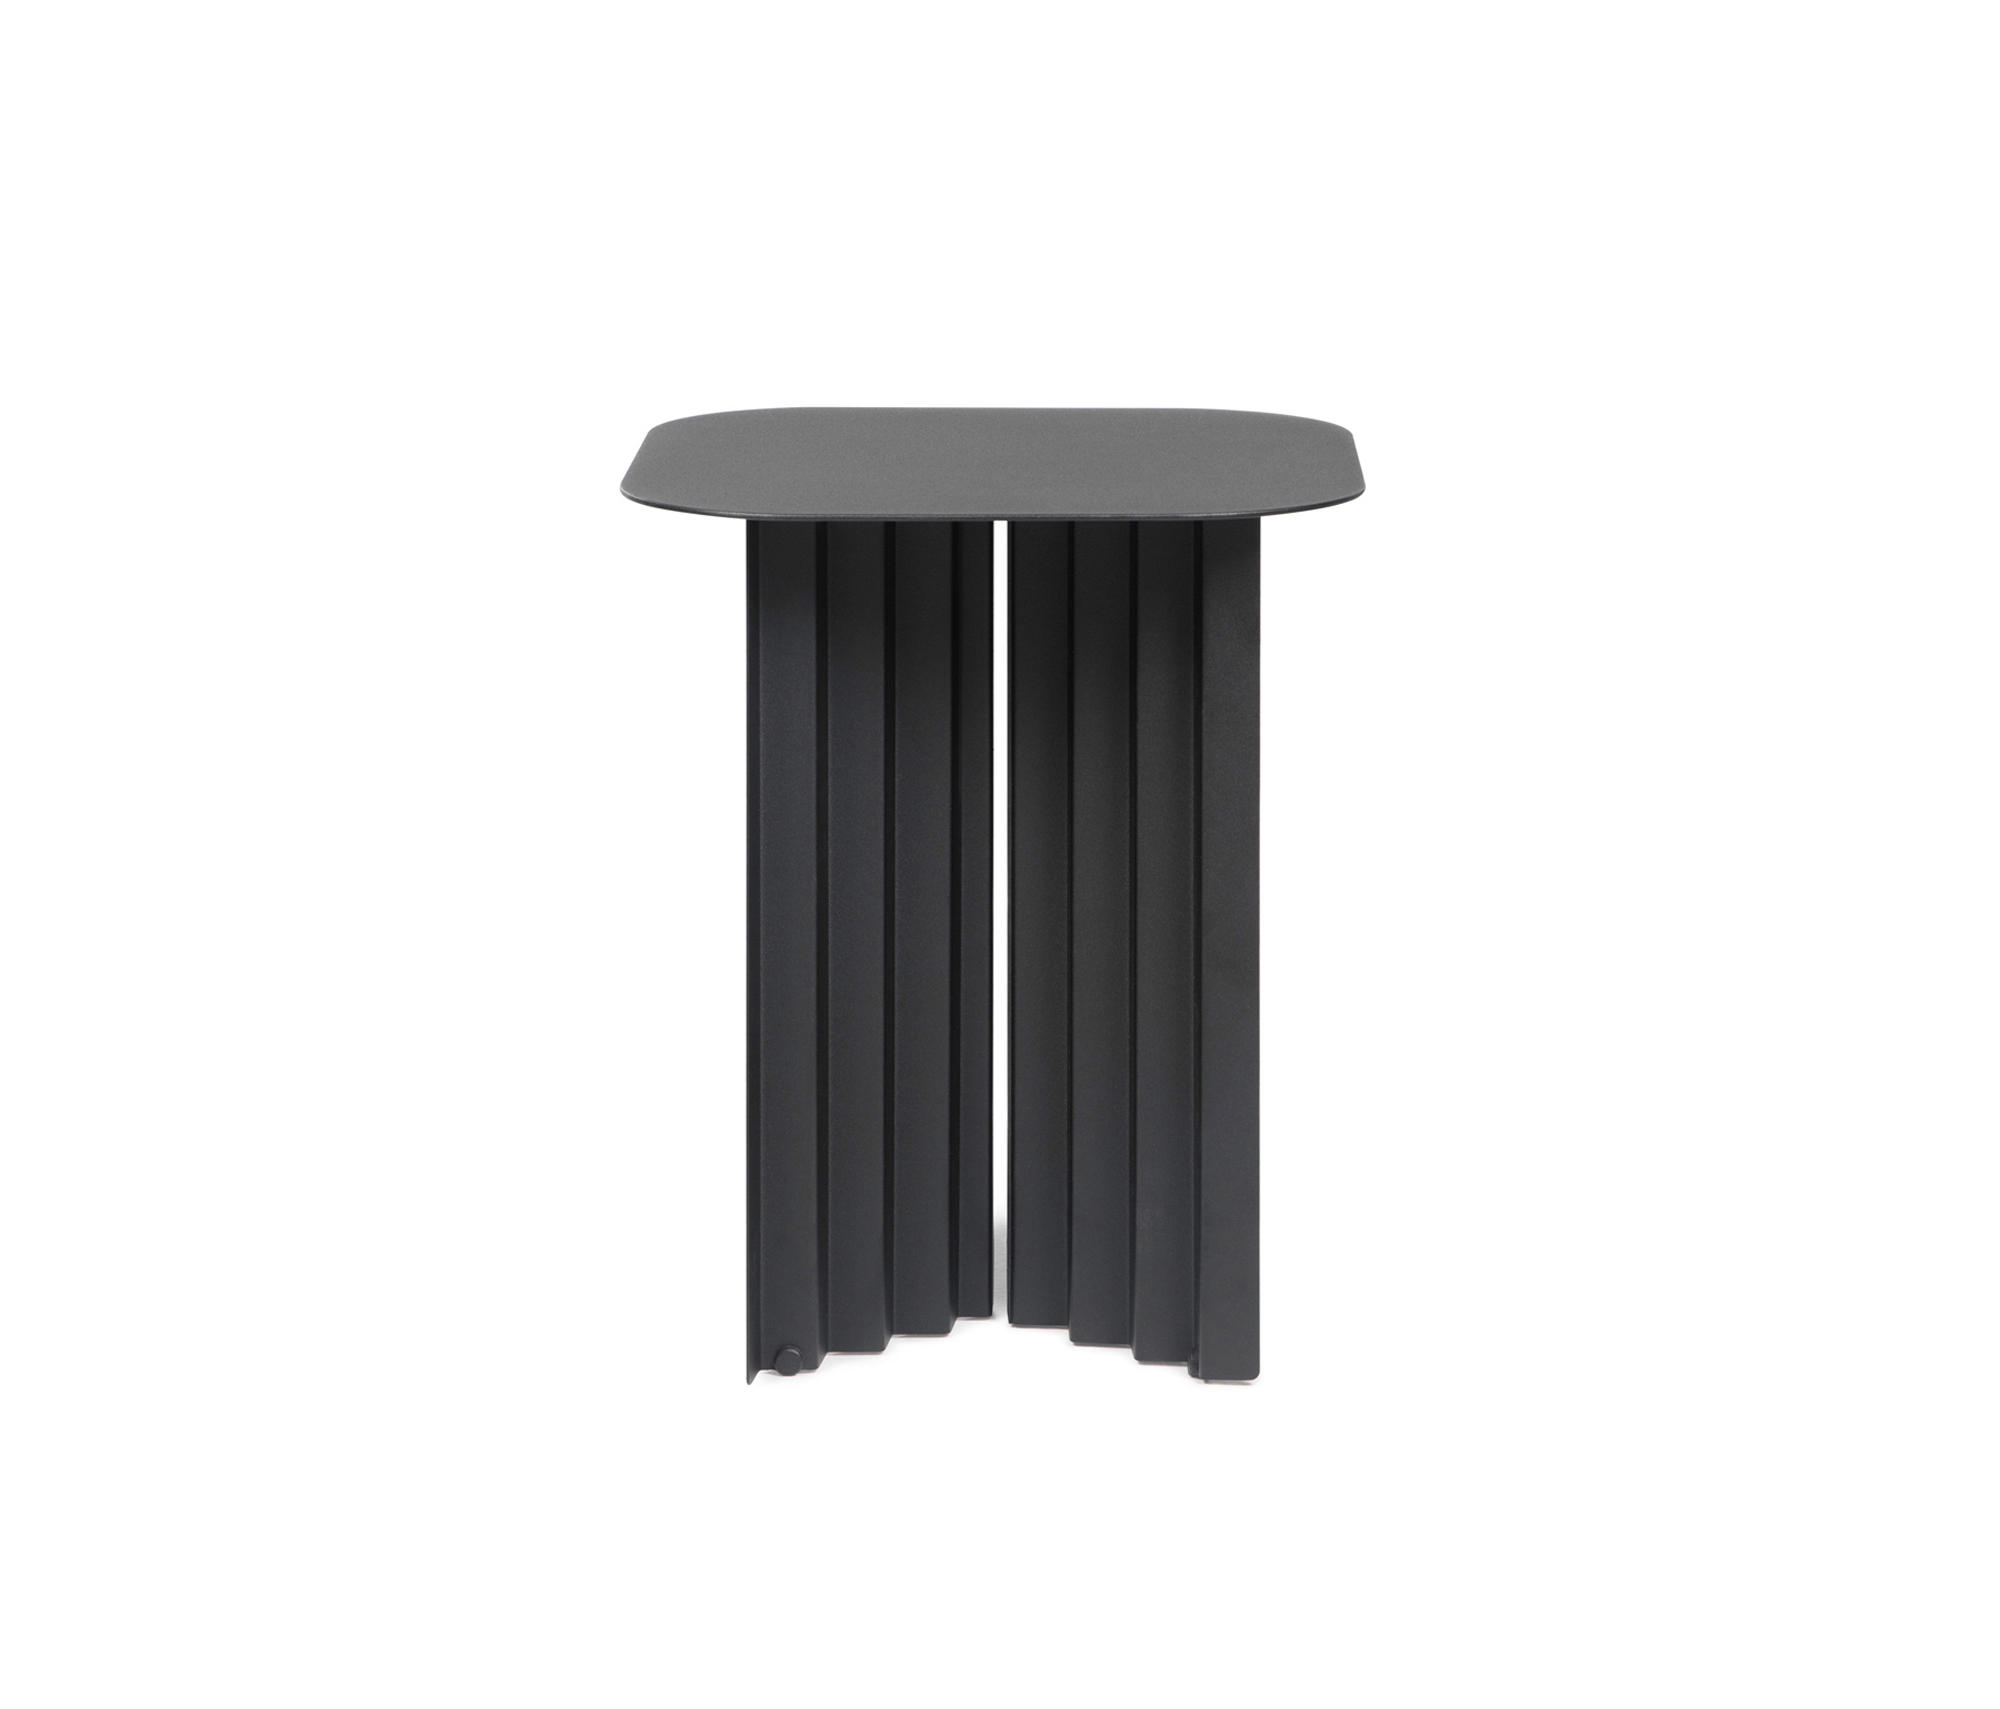 plec table small metal side tables from rs barcelona. Black Bedroom Furniture Sets. Home Design Ideas